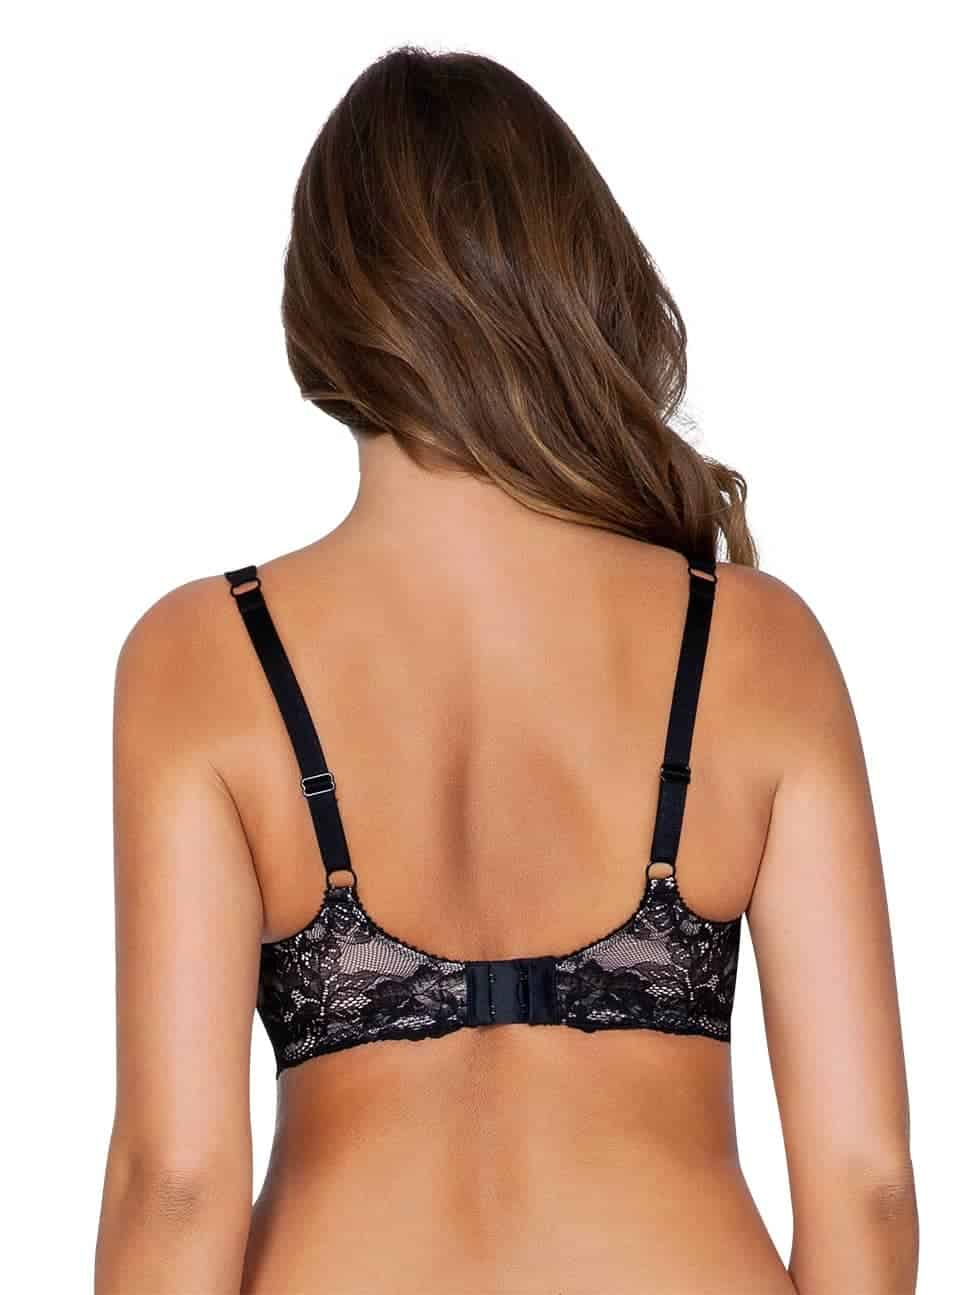 Marion P5391ContourPadded Back copy 2 - Marion Contour Padded Bra - Black – P5391